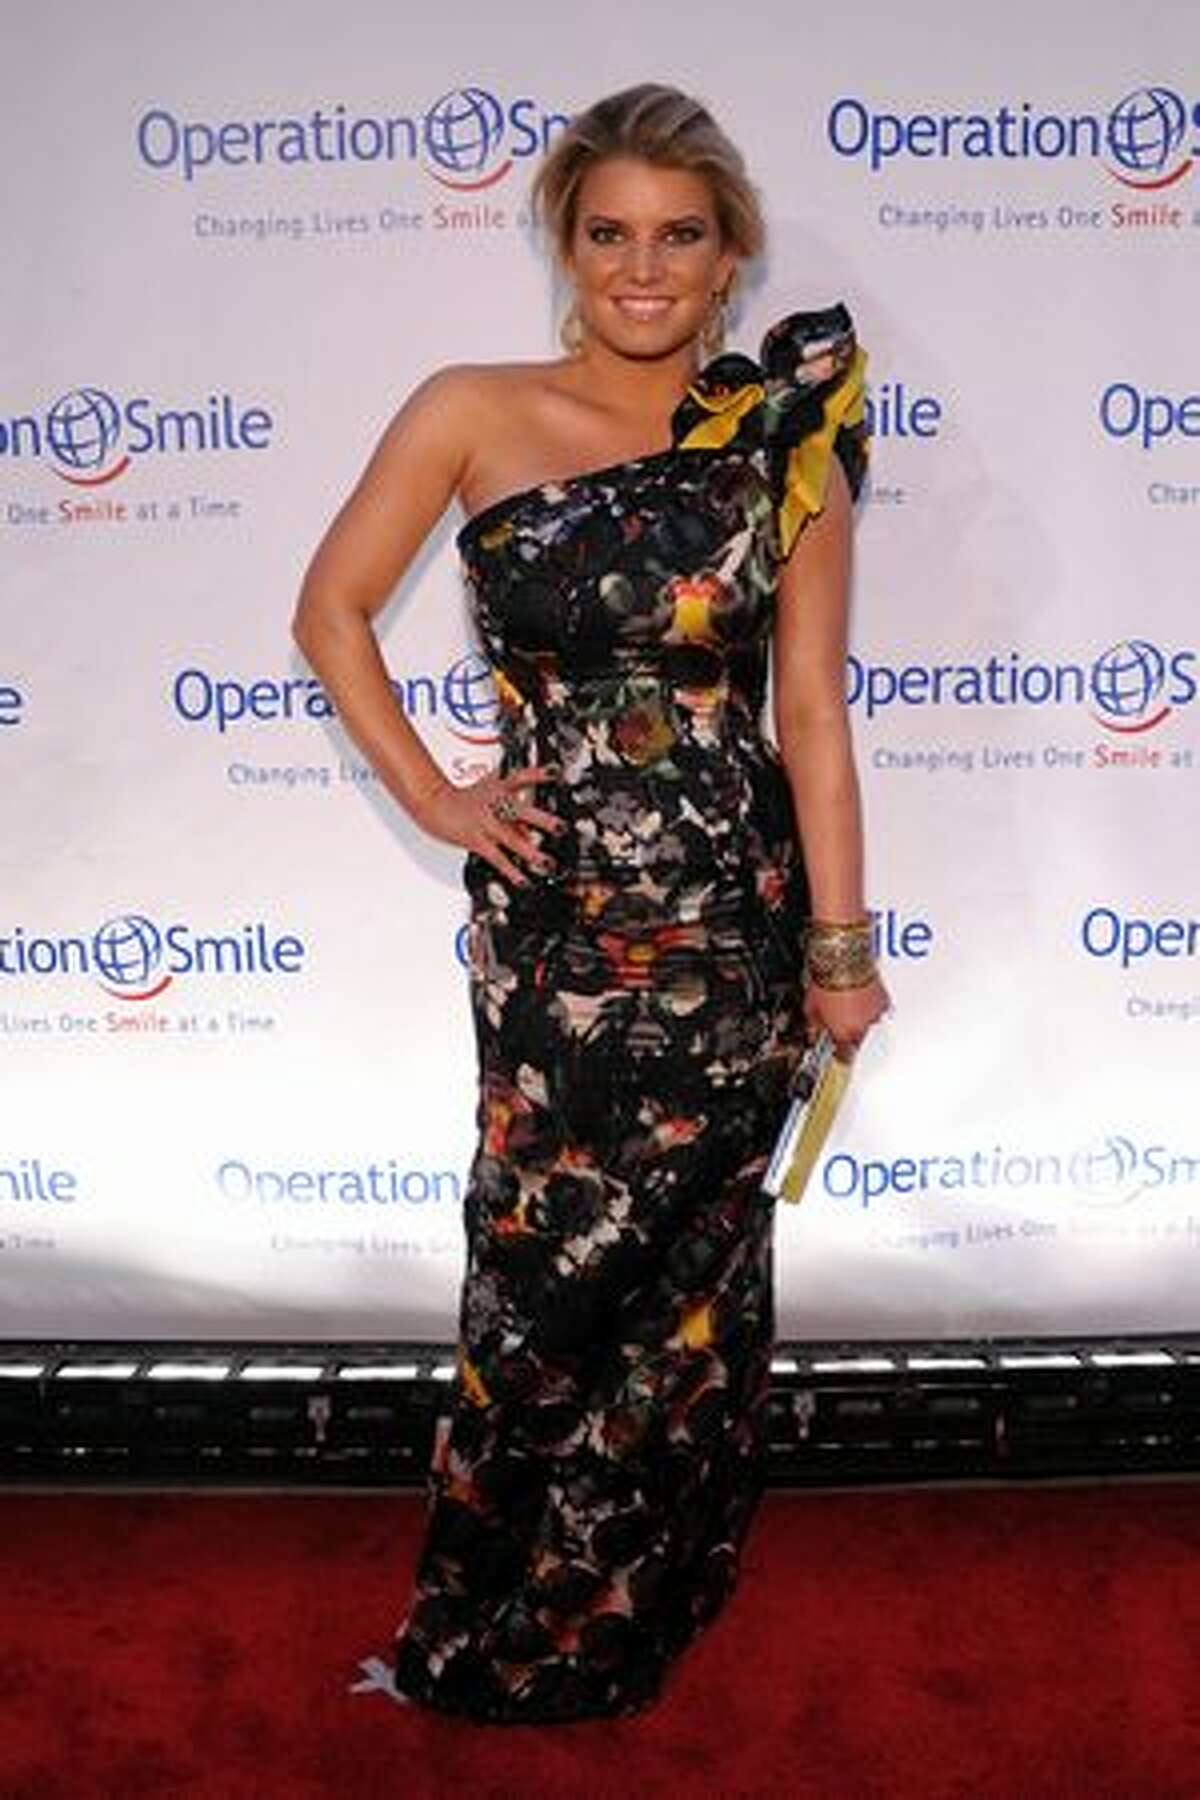 Singer Jessica Simpson attends the 2010 Operation Smile annual gala at Cipriani, Wall Street on Thursday, May 6 in New York City.